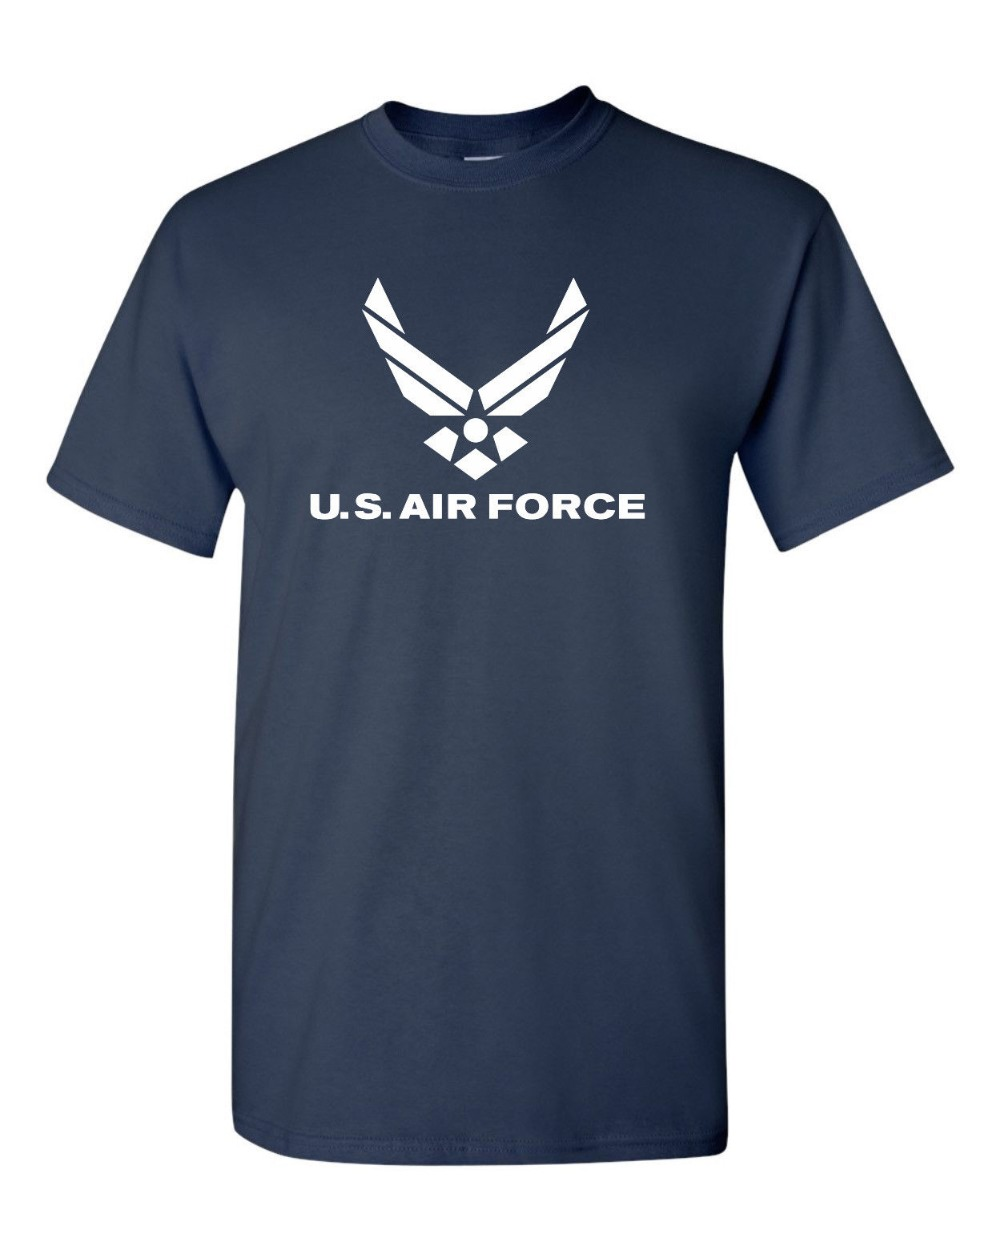 Us Air Force Logo American Military <font><b>Usaf</b></font> 2019 Men T <font><b>Shirt</b></font> Fashion Funny Clothing Casual Short Sleeve T <font><b>Shirts</b></font> Casual Men Tees image